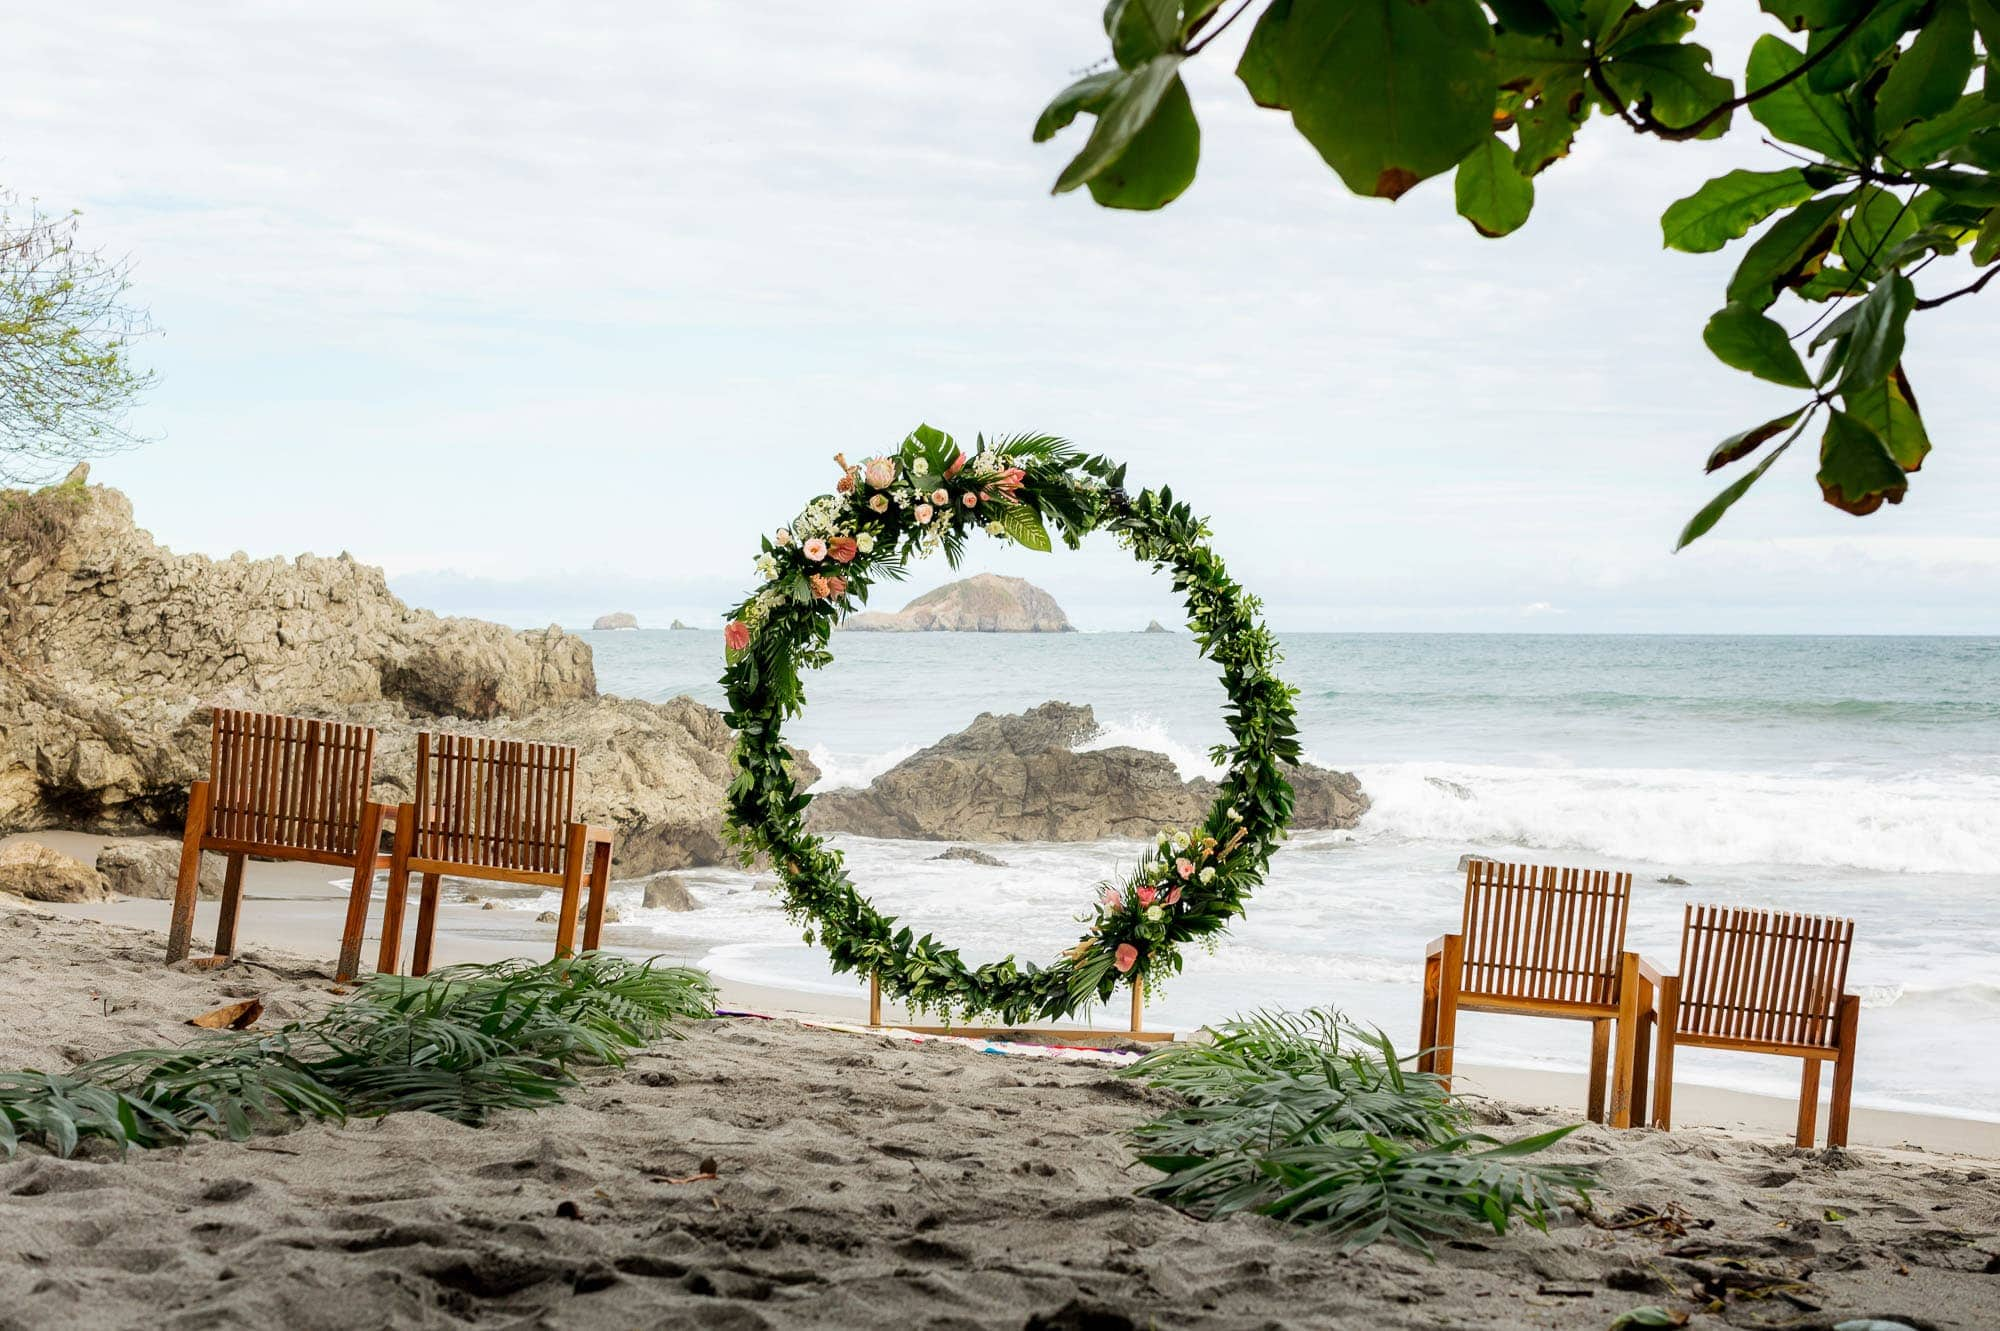 The lovely ceremony site